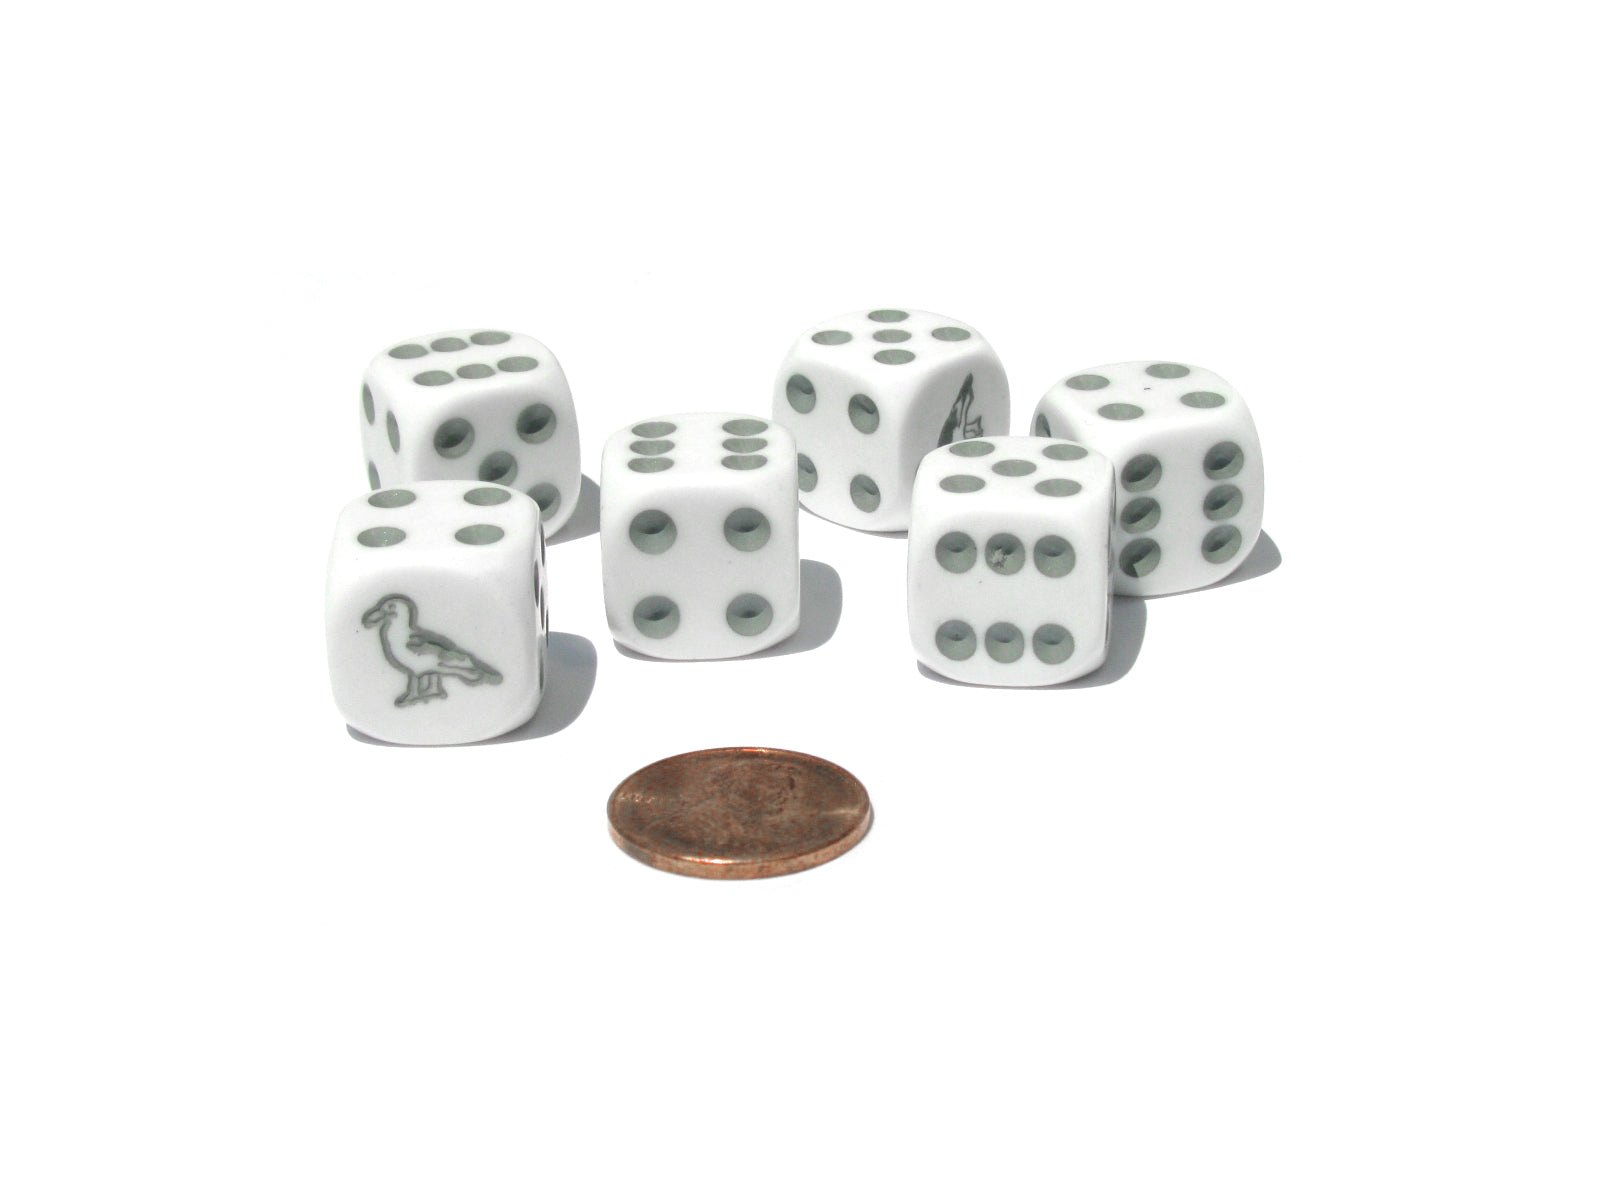 Set of 6 Seagull 16mm D6 Round Edged Koplow Animal Dice - White with Gray Pips